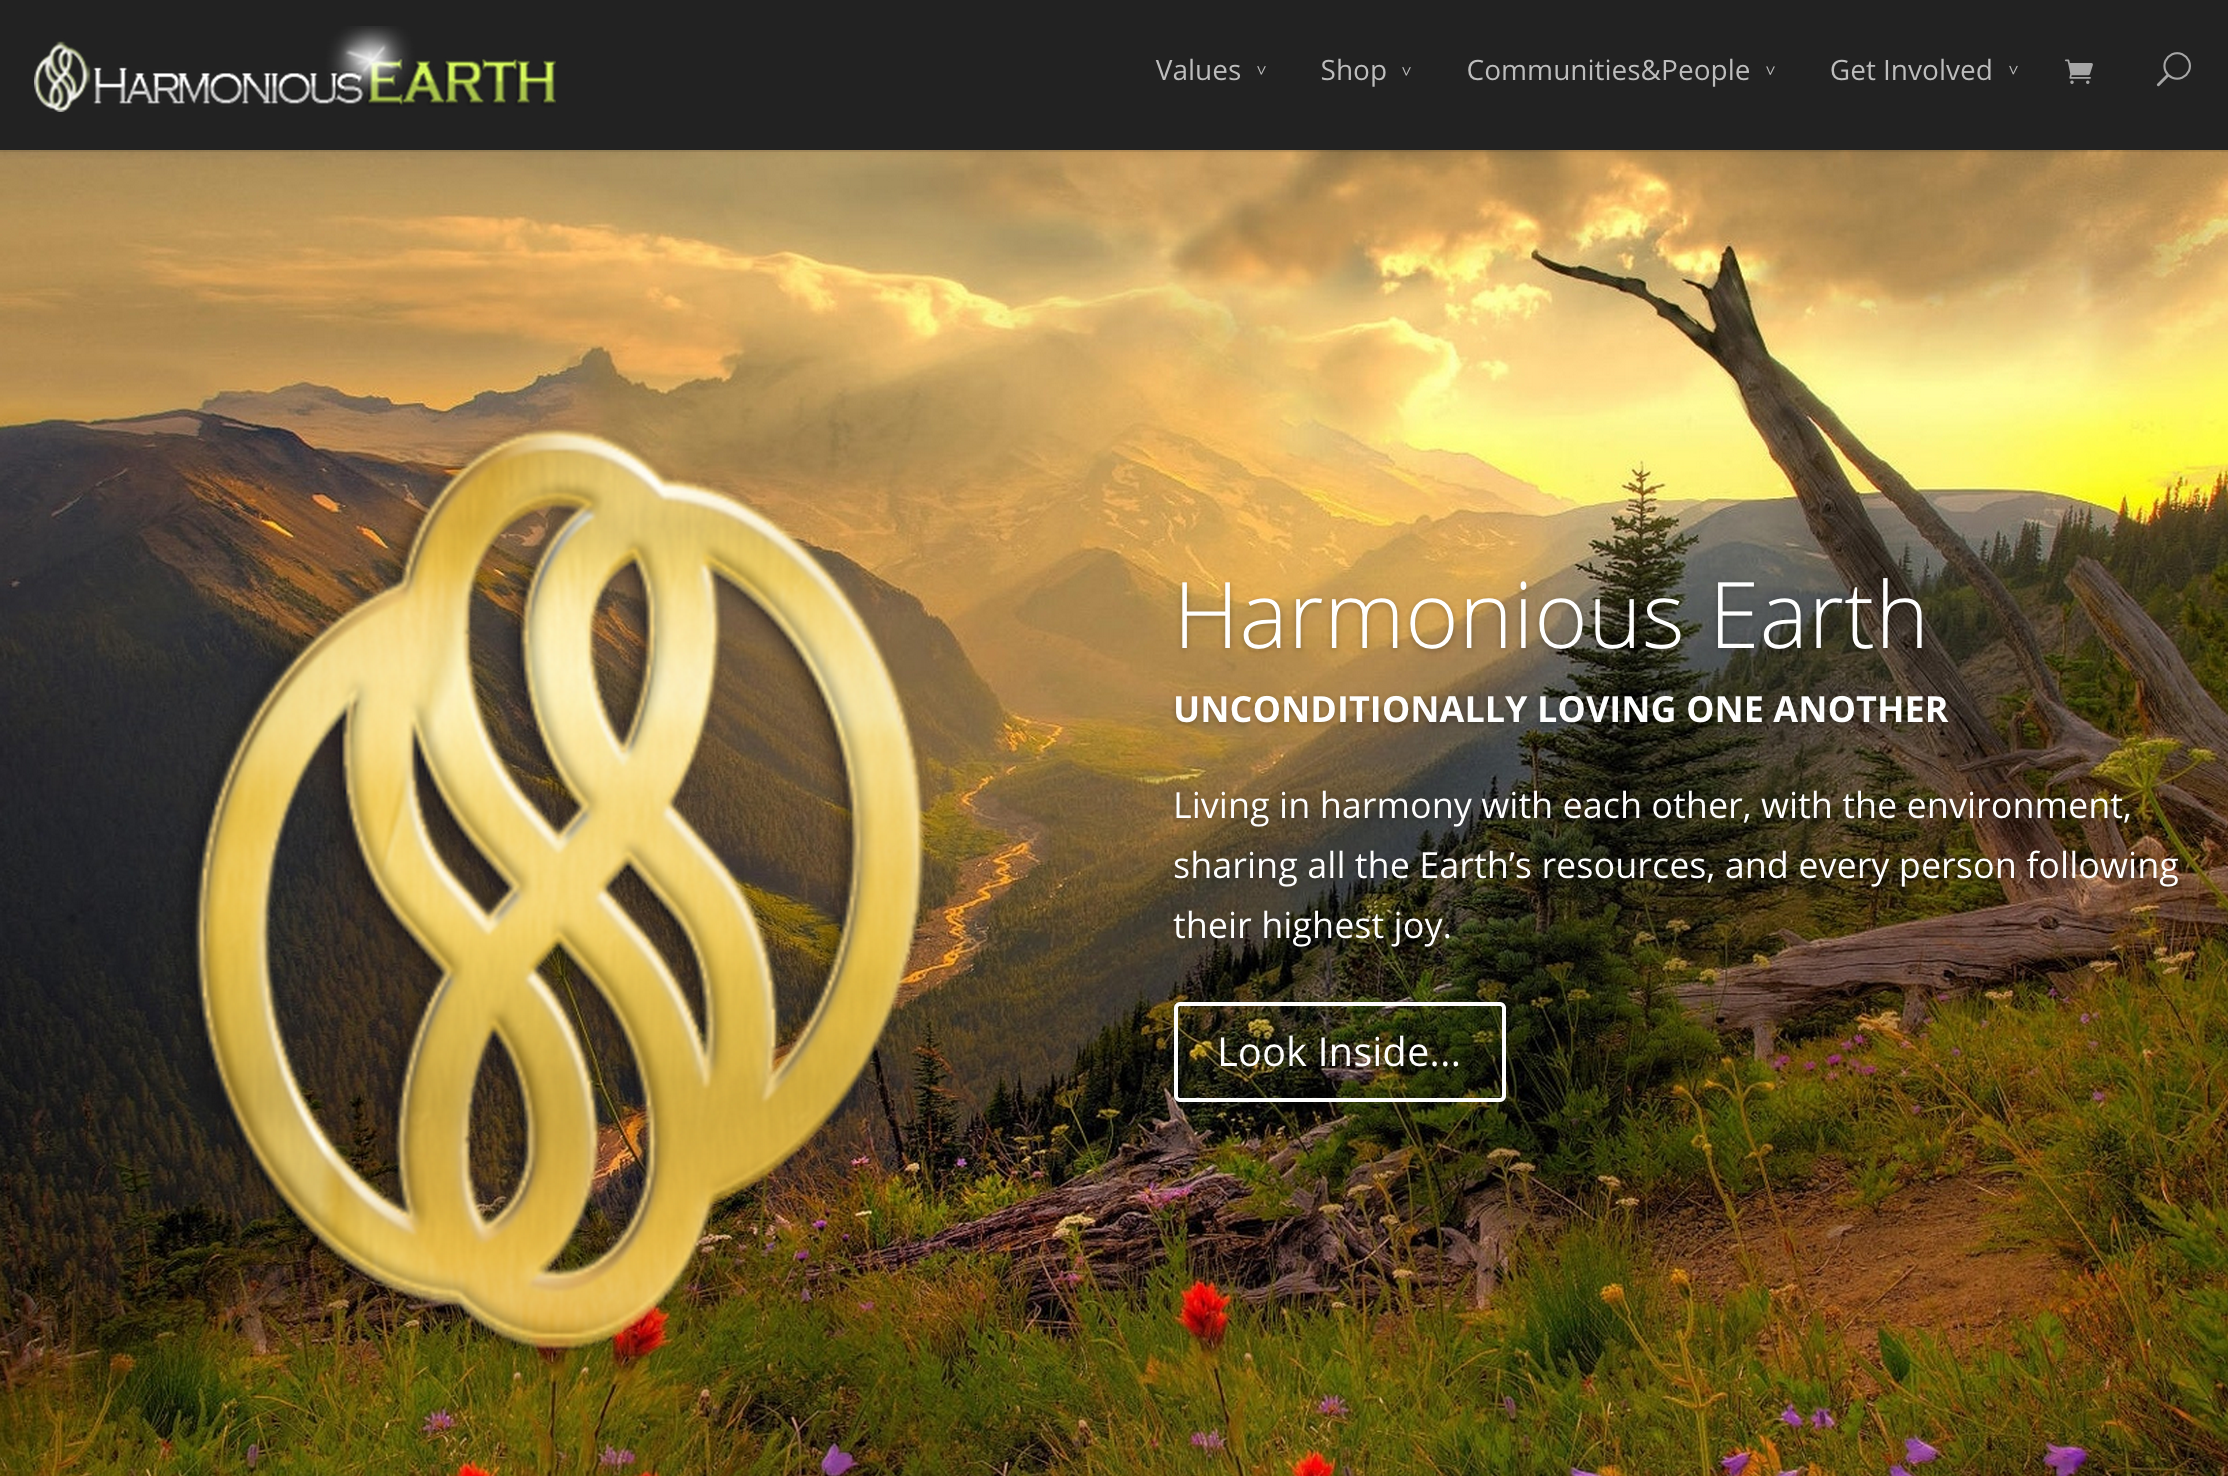 Harmonious Earth Website Home Page